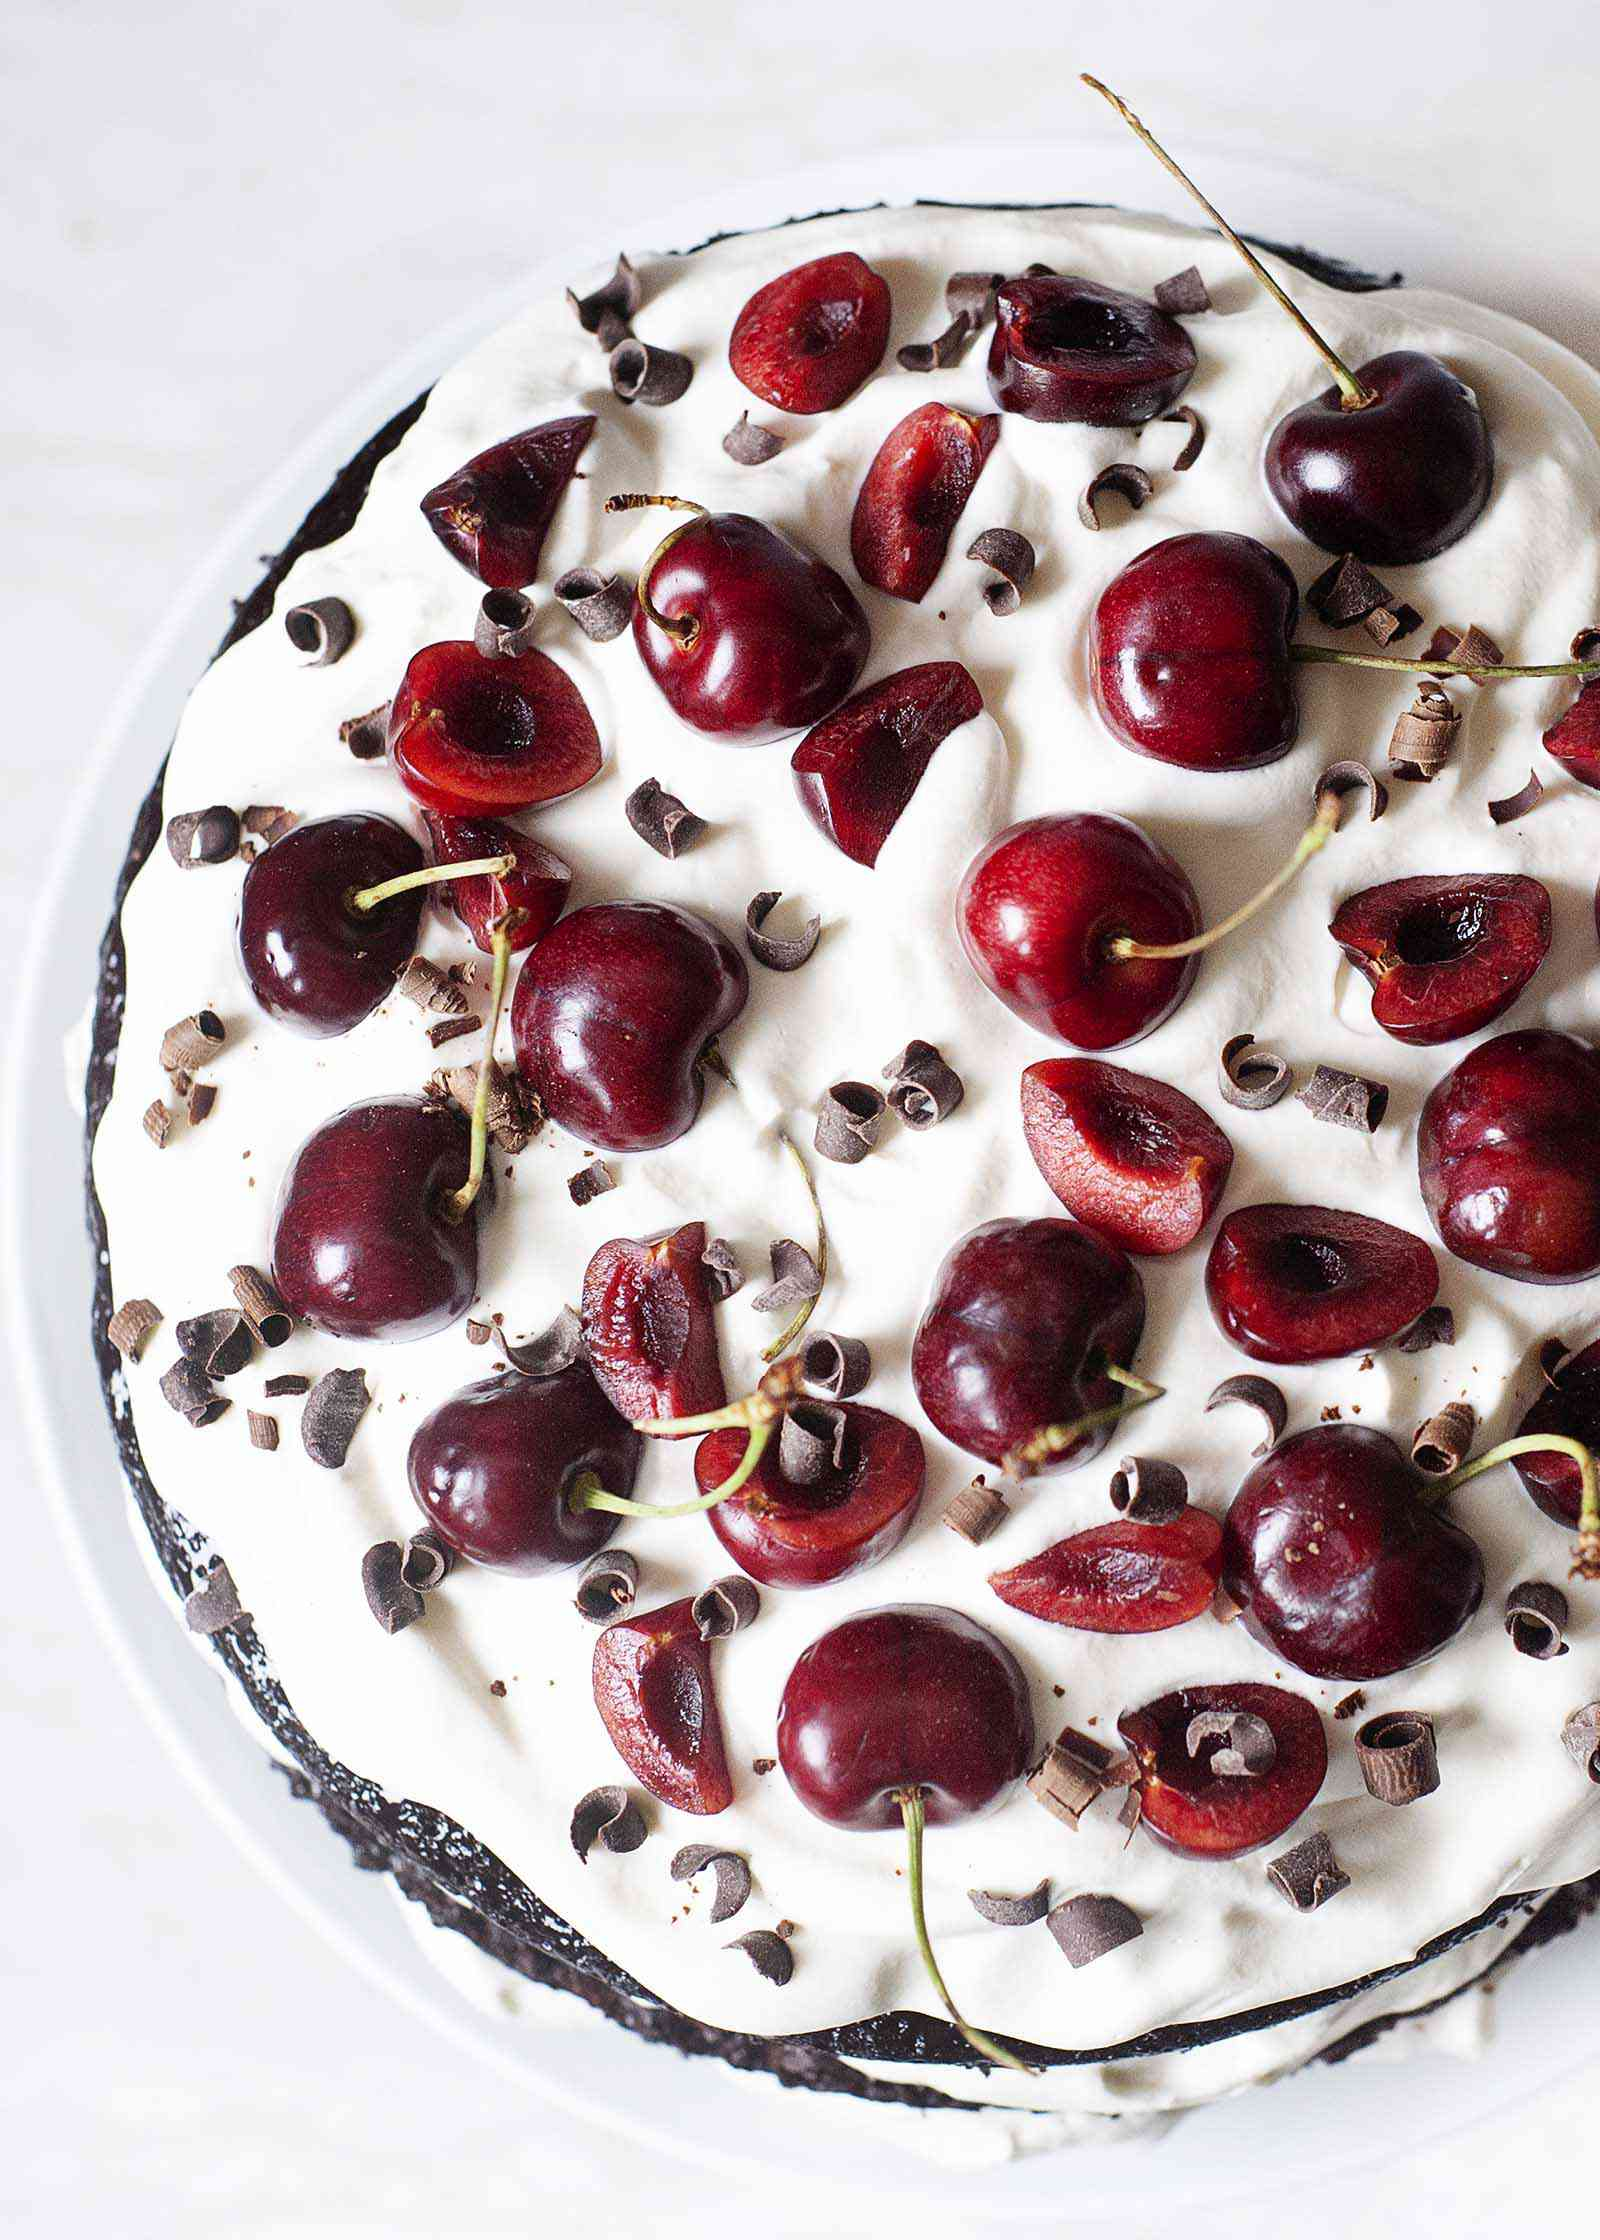 The top of a Cherry Chocolate Cake with Whipped Cream topped with fresh cherries and chocolate.